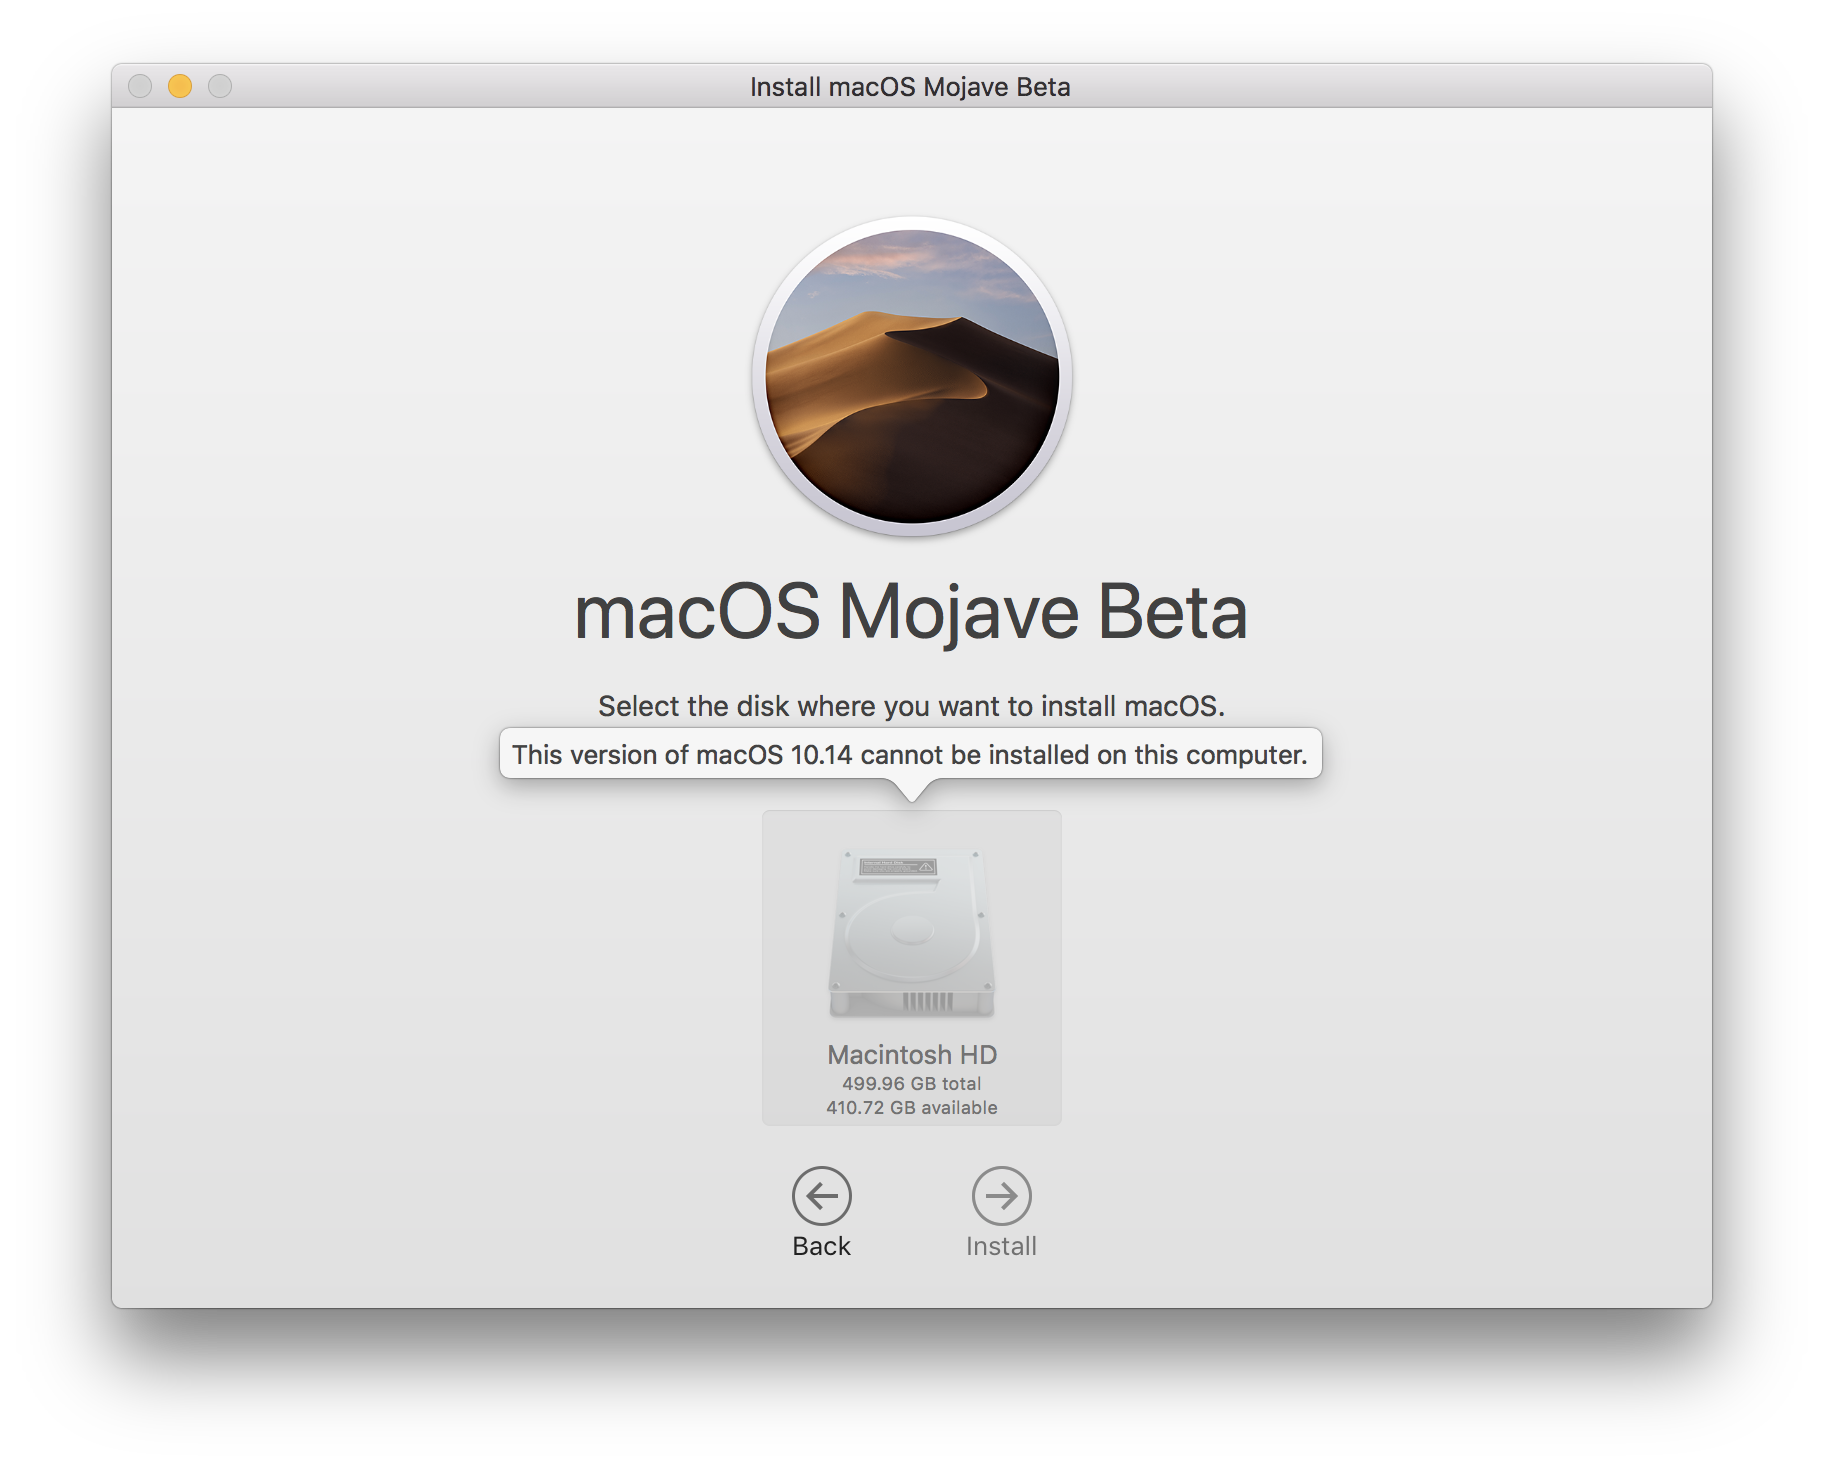 Few '2018 MacBook Pro' owners are falling into errors while installing macOS Mojave